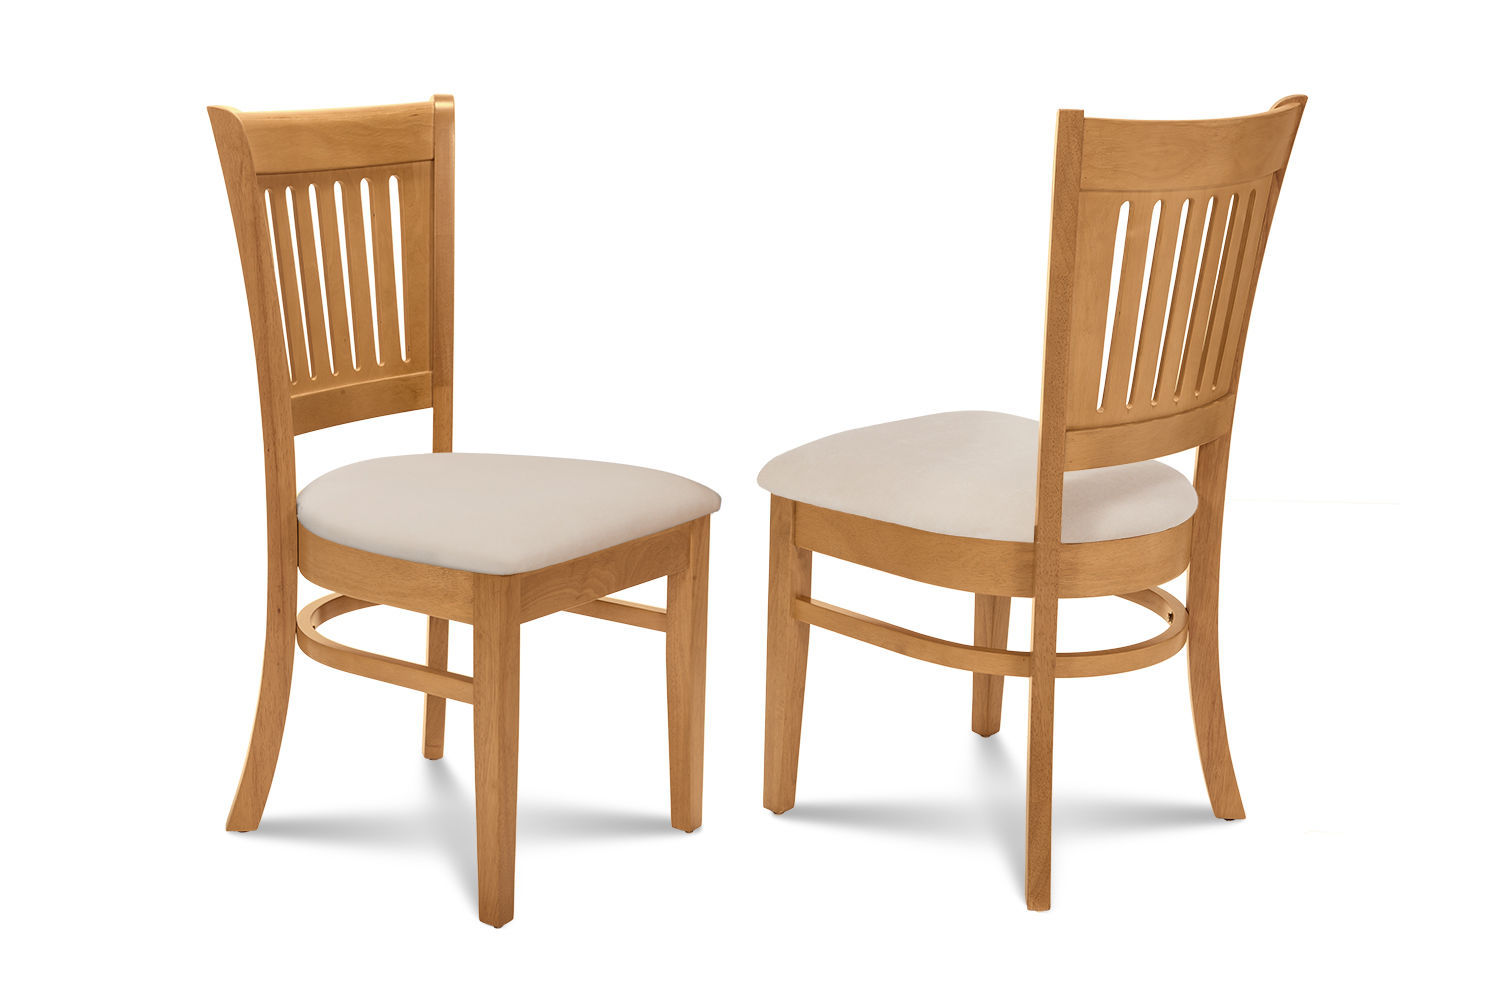 SET OF 4 DINETTE KITCHEN DINING CHAIRS WITH WOODEN SEAT IN OAK FINISH